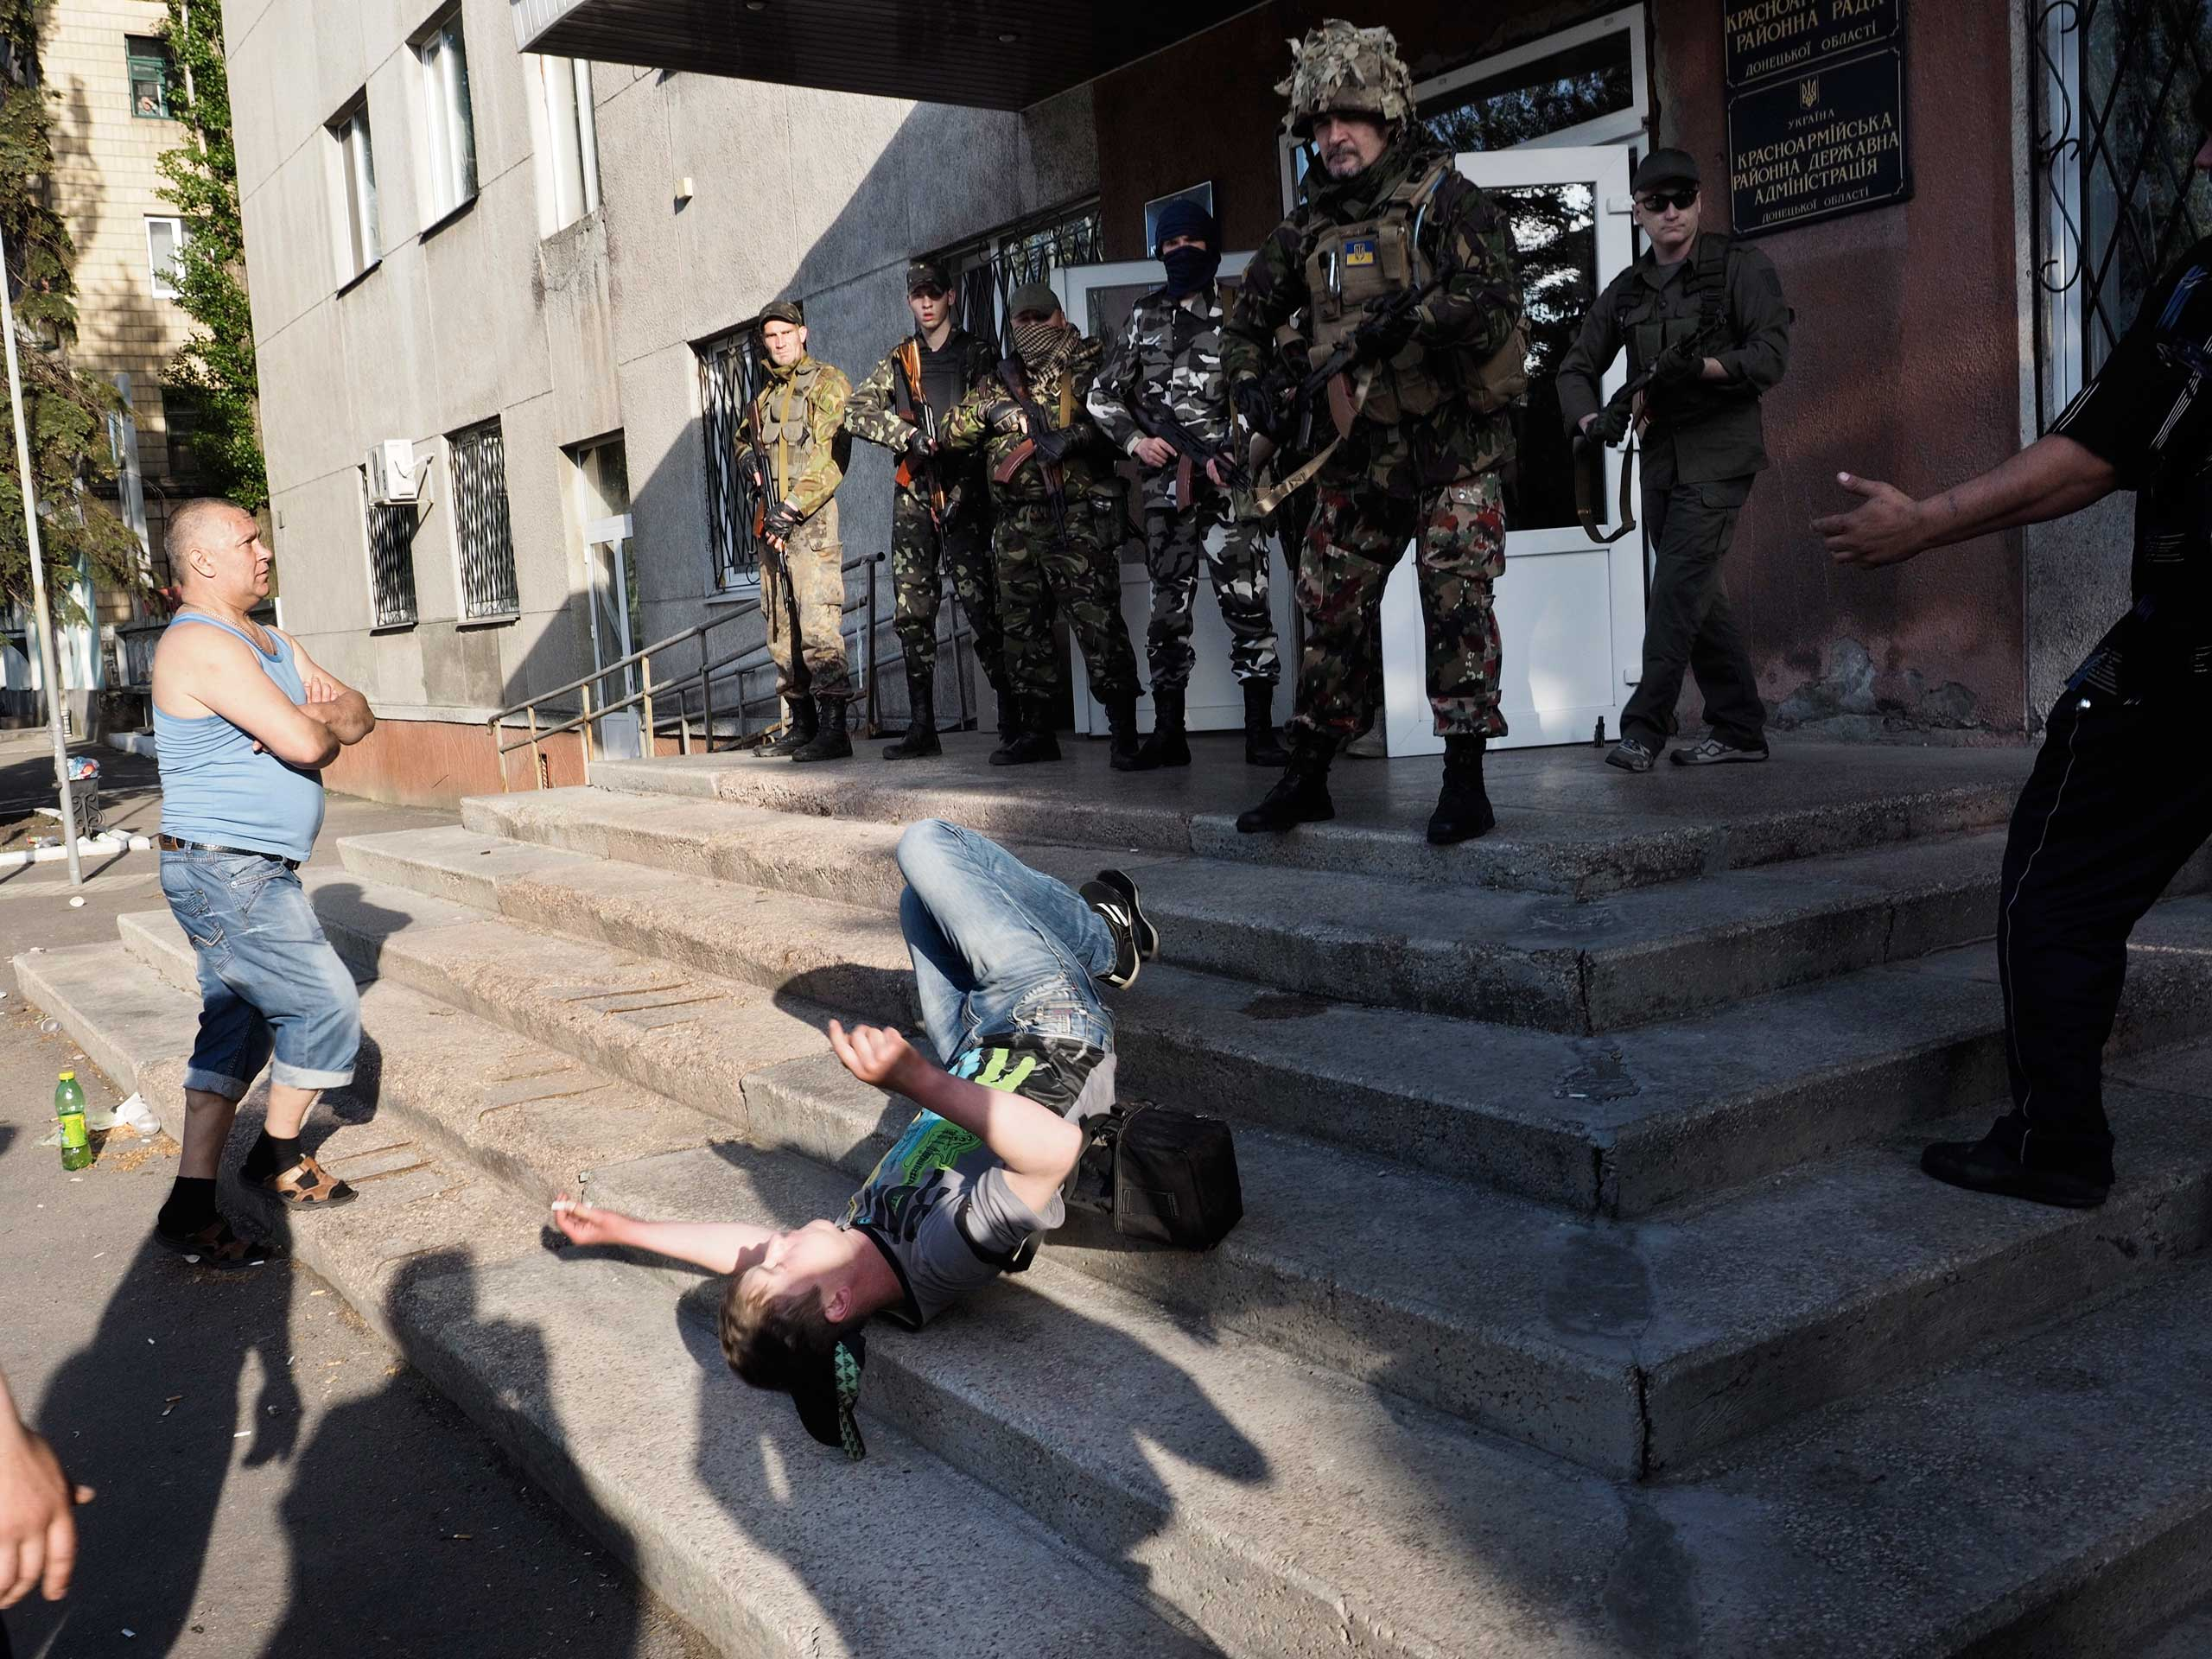 Around 12 armed men identified as members of the Ukrainian national guard opened fire on the voters outside the town hall in Krasnoarmeisk, Ukraine, May 11, 2014.